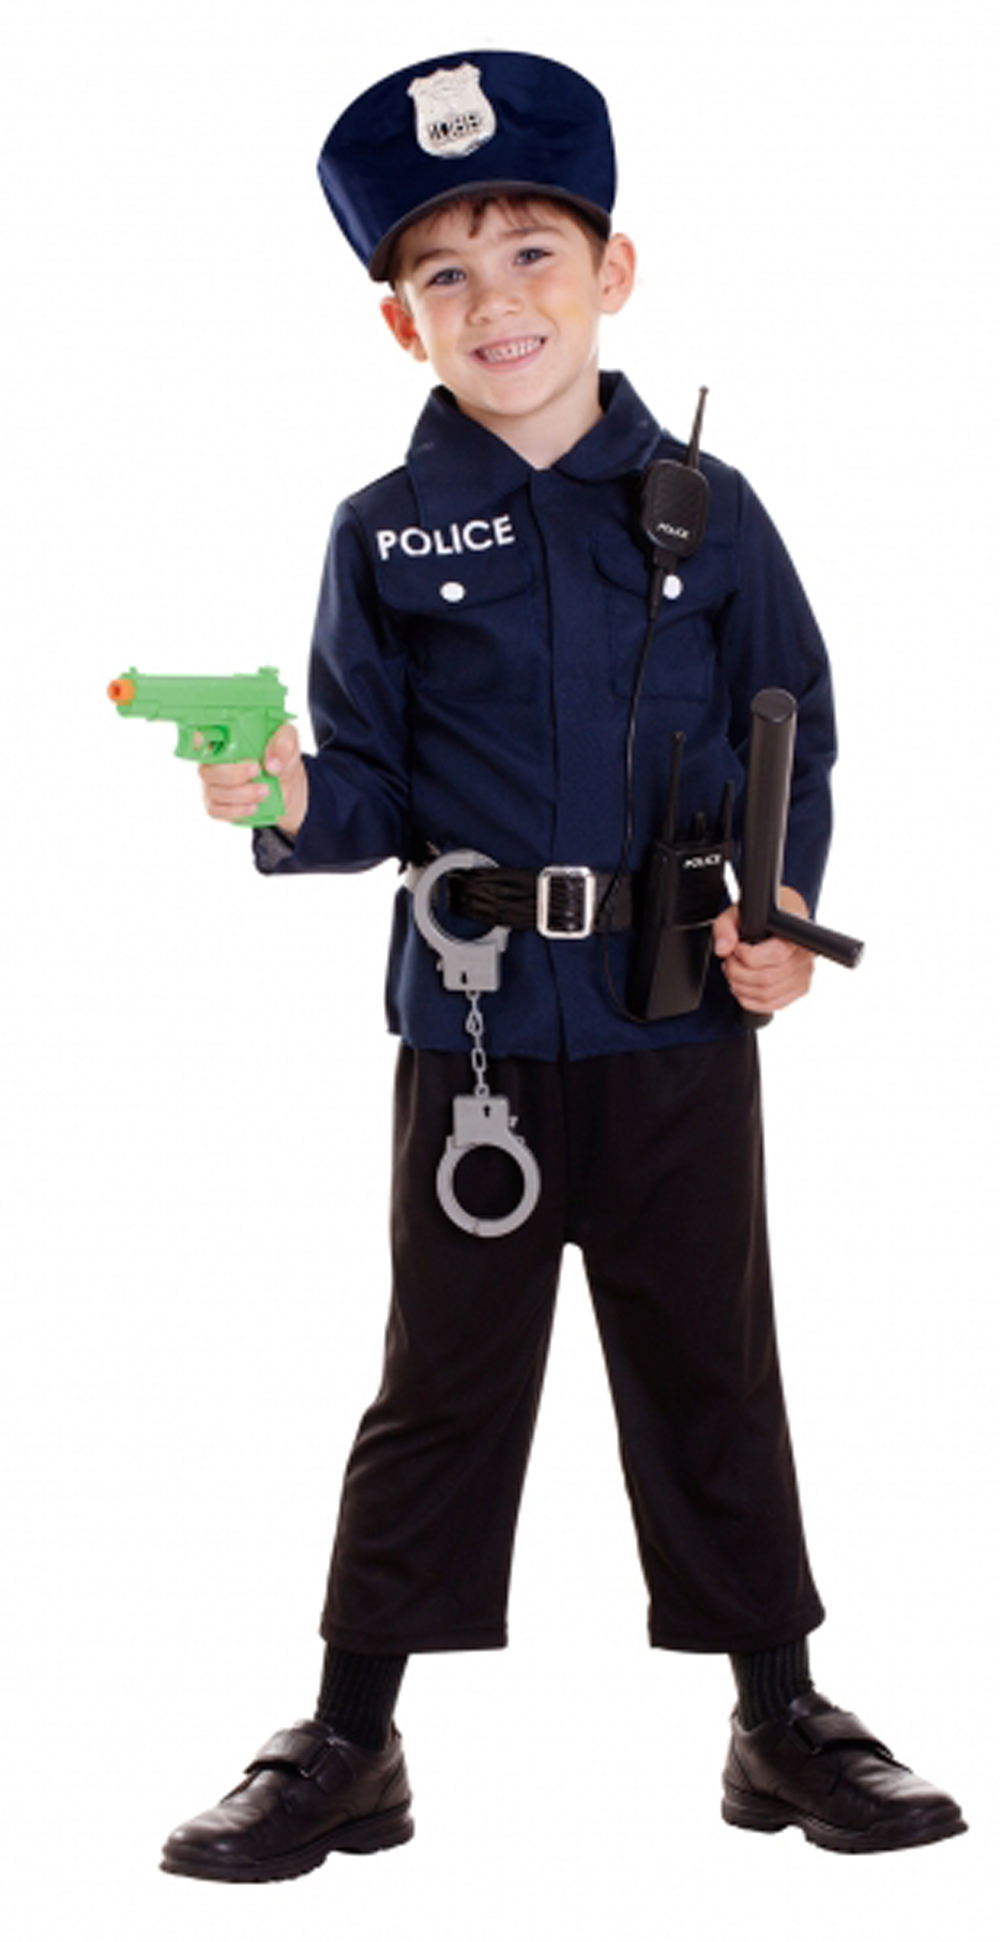 Find and save ideas about Police costume for kids on Pinterest. | See more ideas about Police officer costume, Police halloween costumes and Police officer halloween. Buy Police Officer Costume Dress Up Boy Child Game Toys Kids Fun Home Play at online store Here are Father and Son Cop Inmate Costumes for Halloween. Dress up as a police.